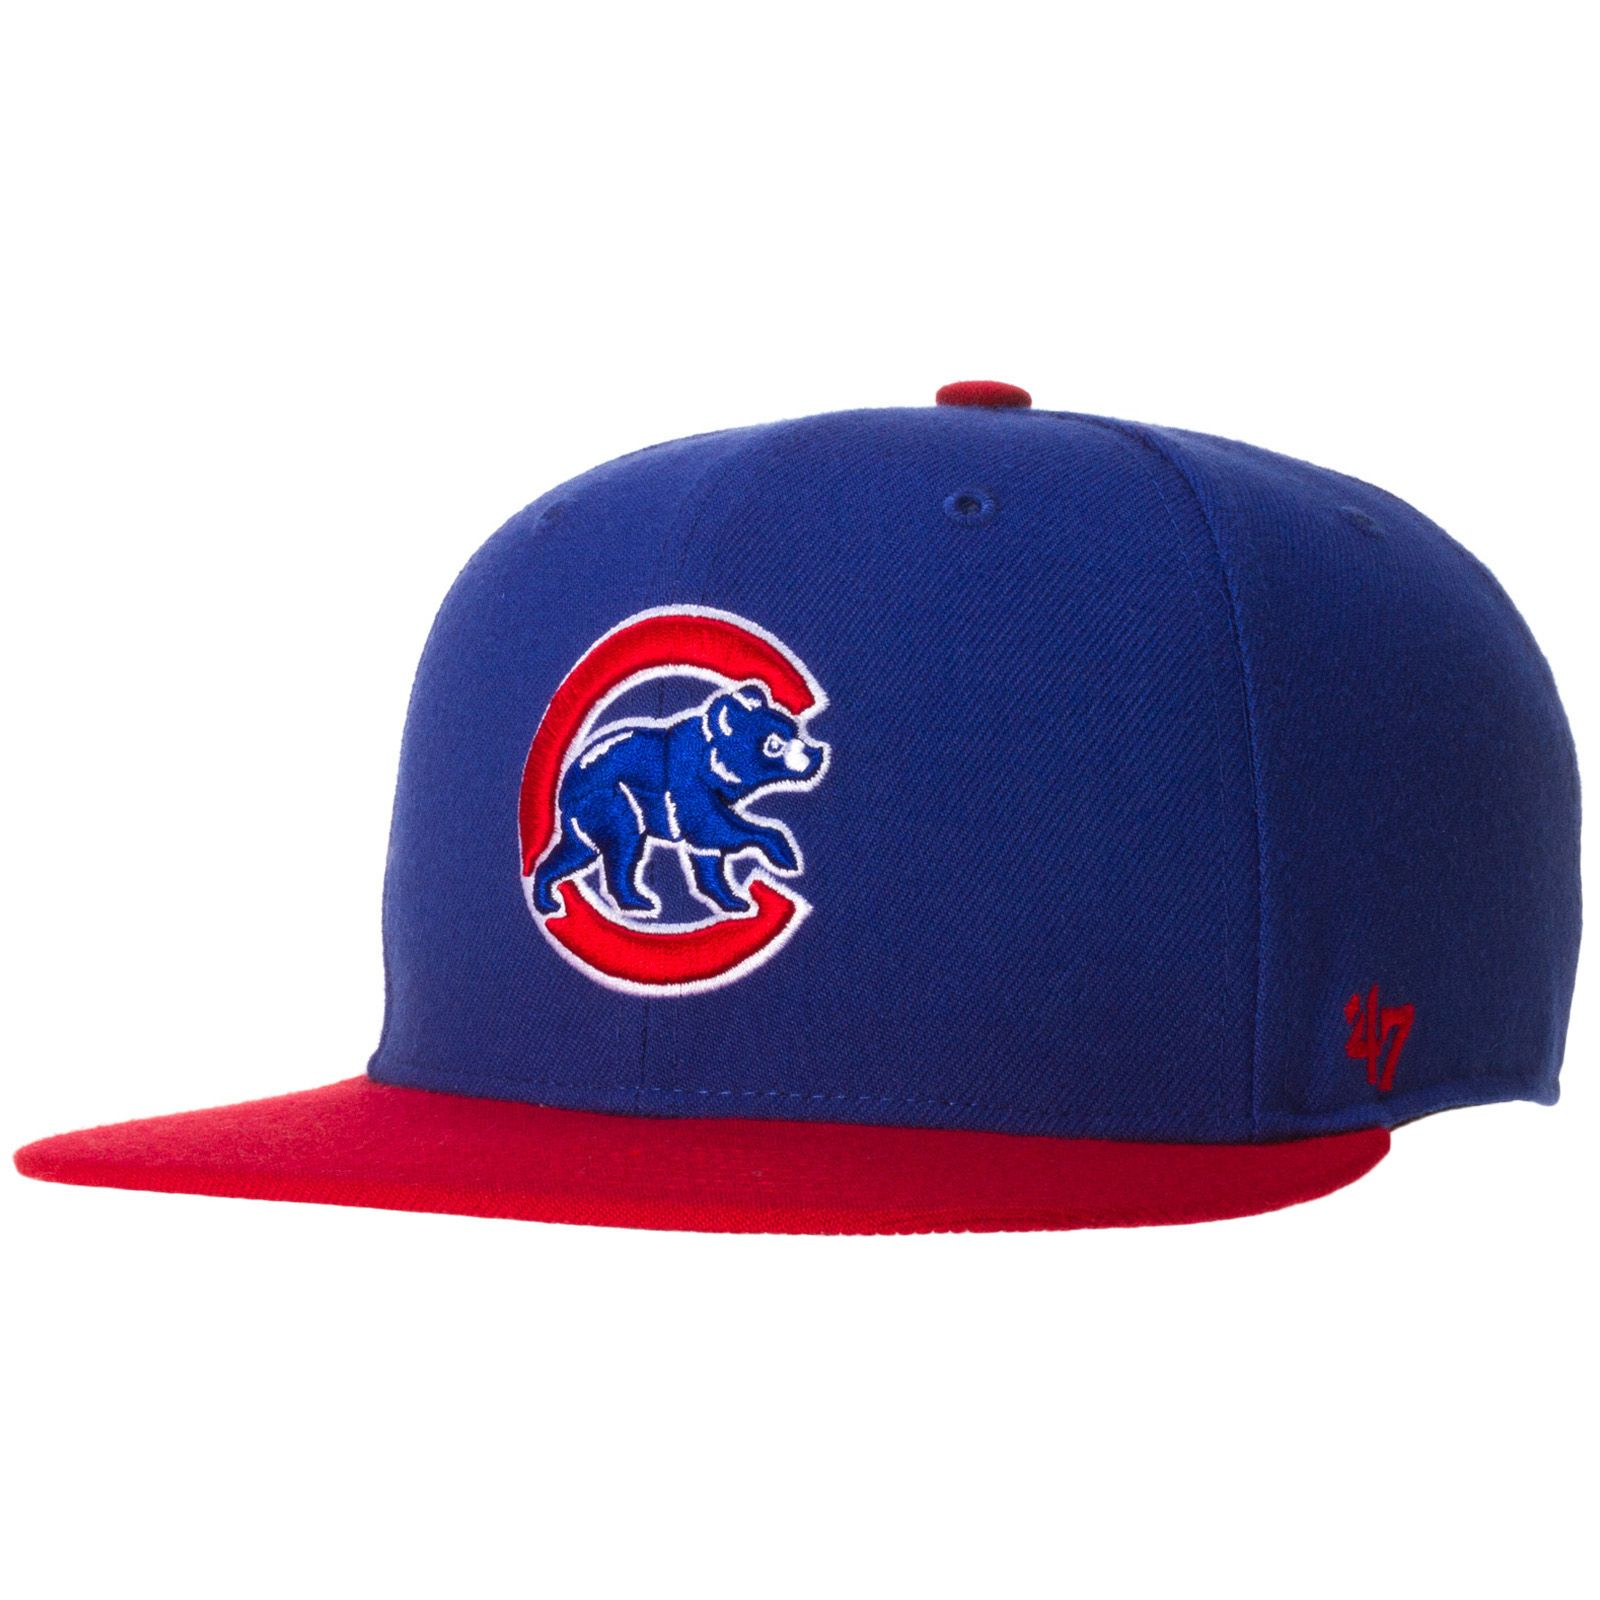 73cbff1ea Chicago Cubs Royal/Red Bill Crawl Bear Snapback with Chicago Flag by 47  Brand #Chicago #Cubs #ChicagoCubs